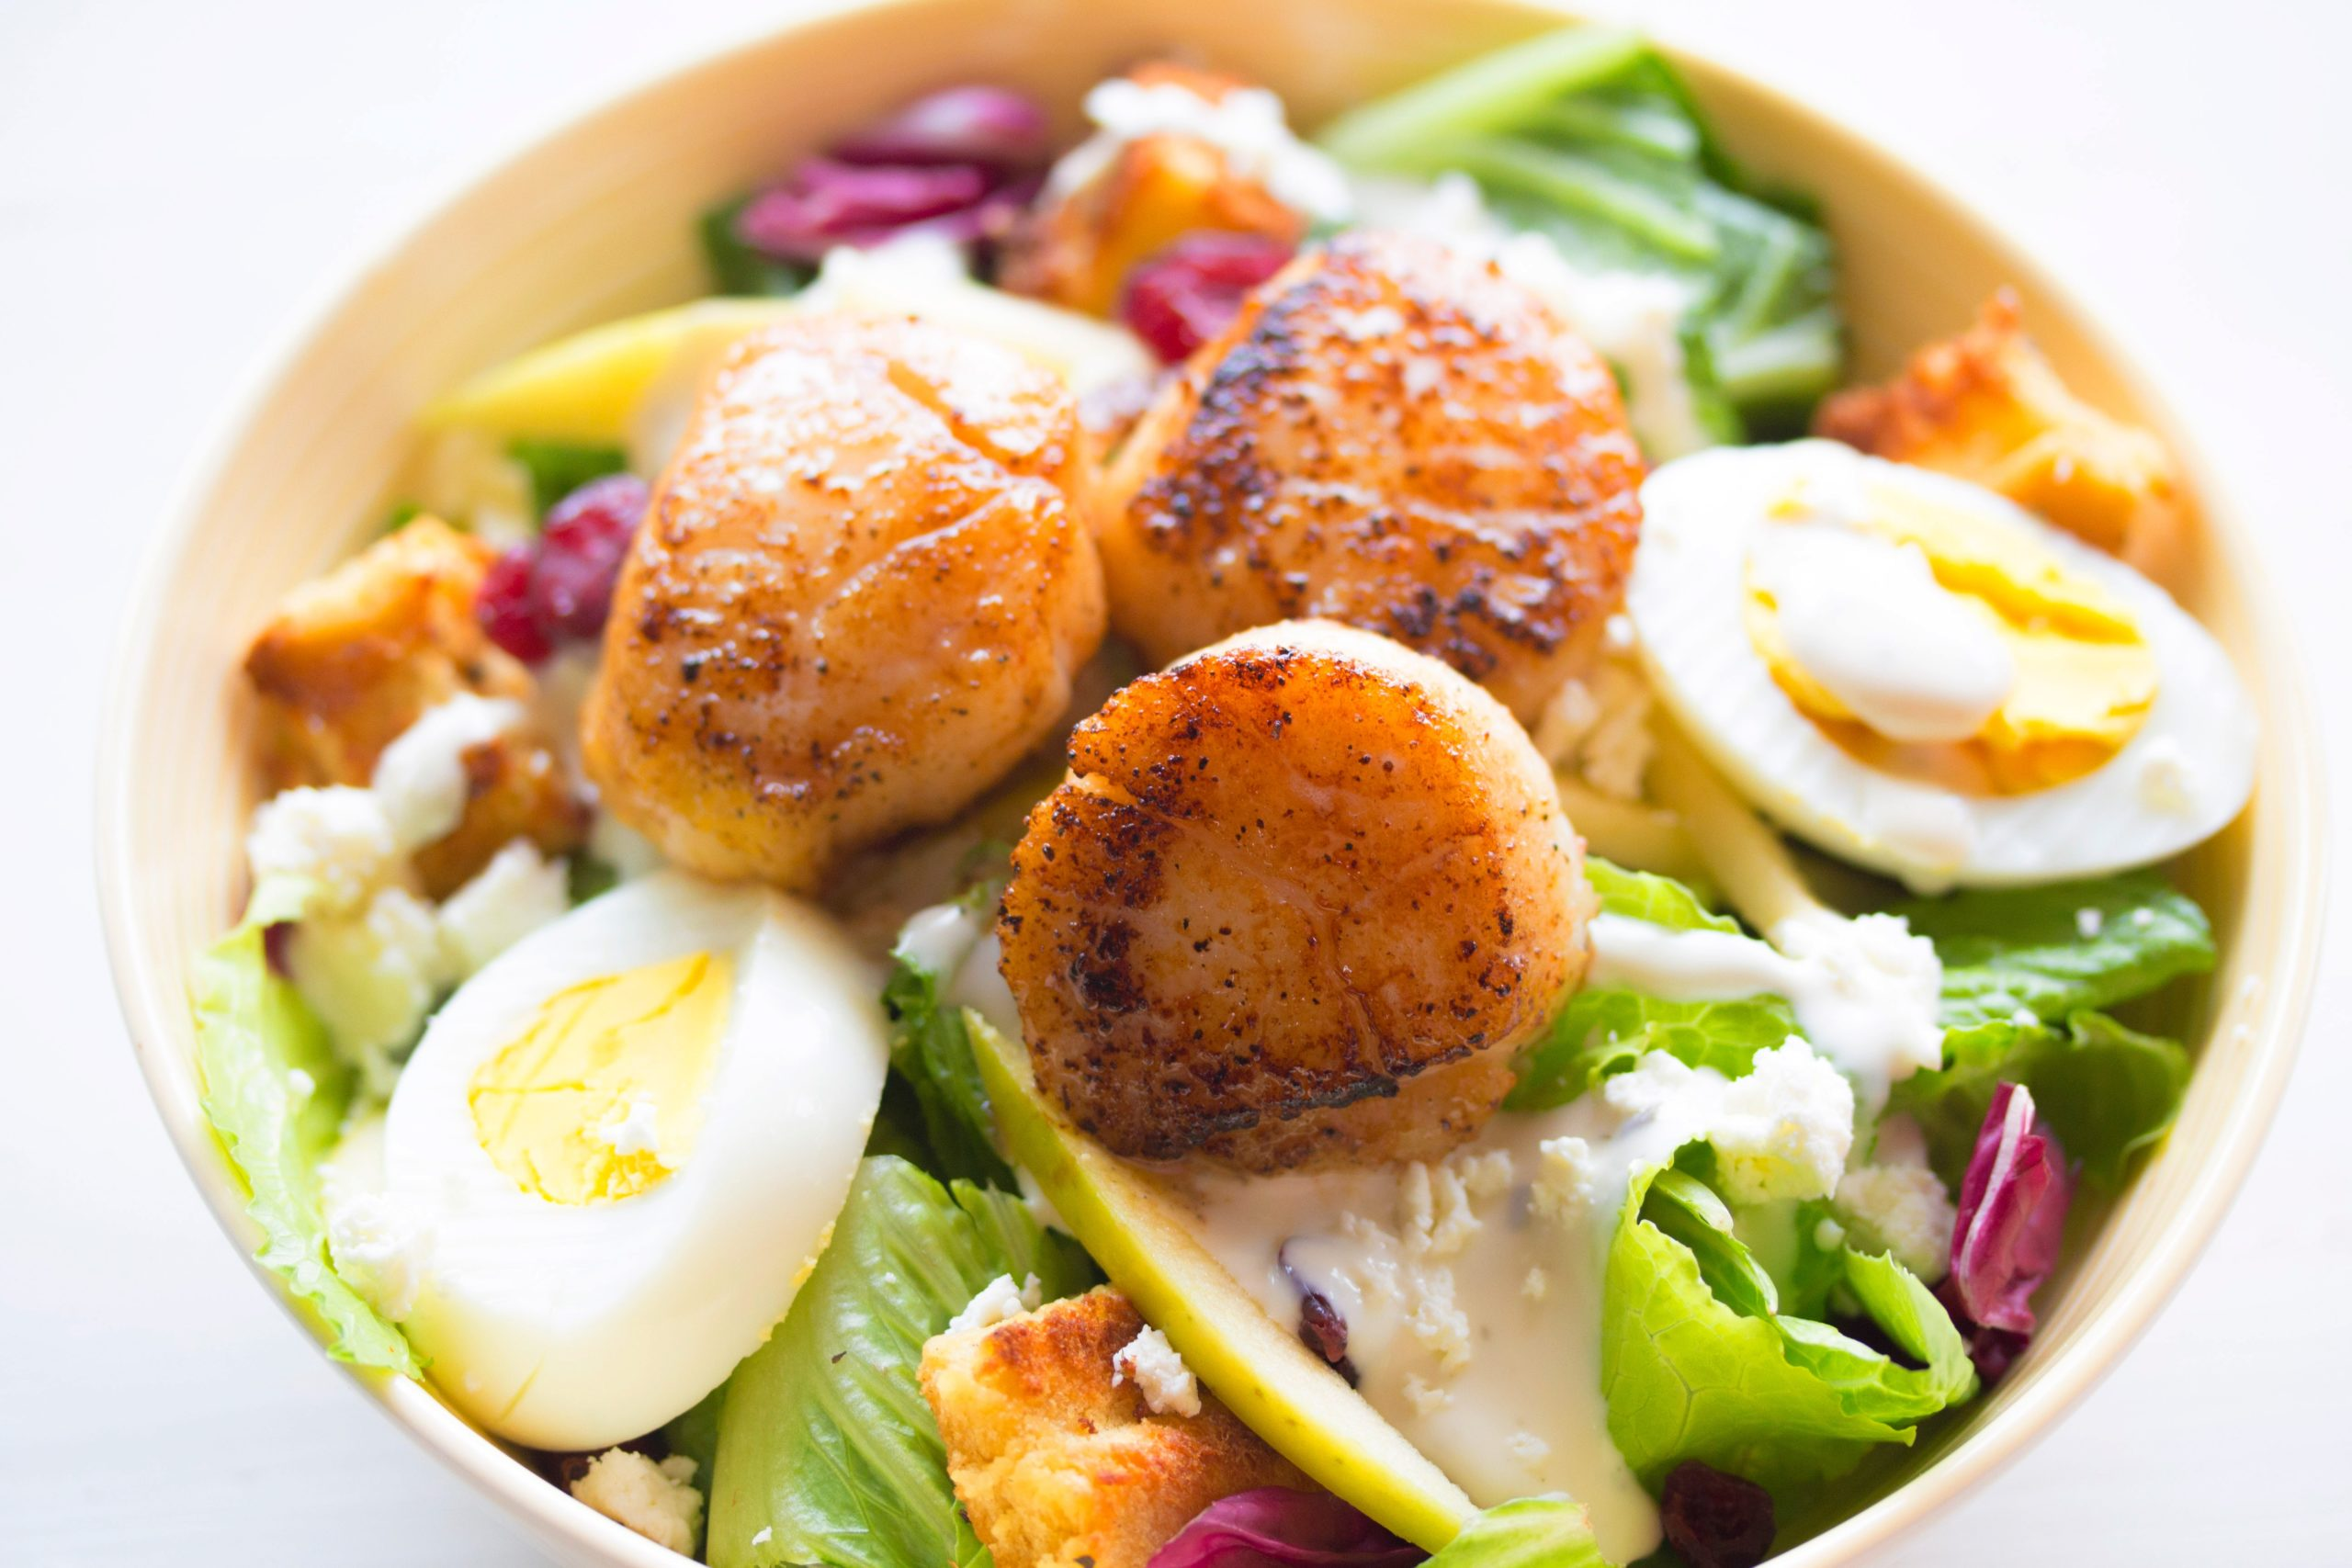 What Are Scallops?